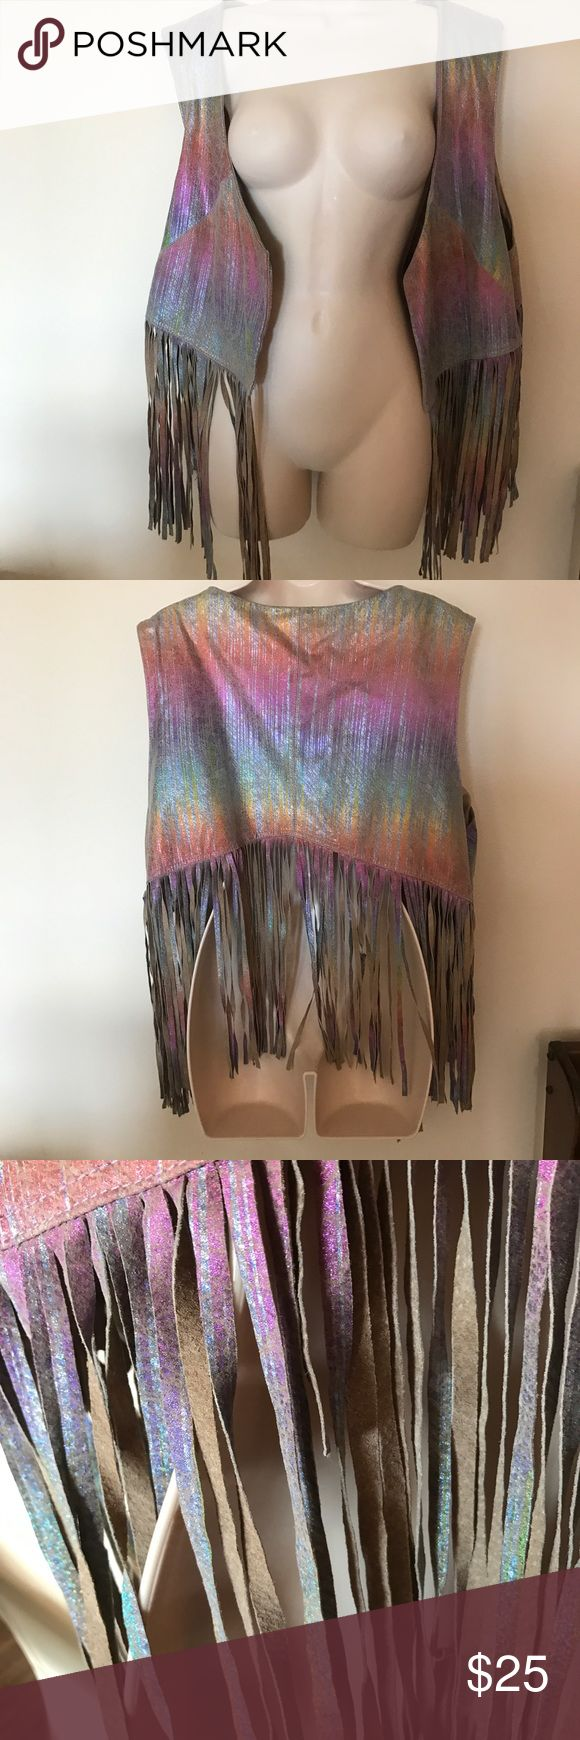 ASOS Curve iridescent fringe vest The coolest vest ever! Real leather and so funky! I love this but sadly never wear it, so it needs love! A few of the fringed are shorter than others from breaking off, but overall great condition! Fringe included, vest is 23 inches long and 26 inches wide. ASOS Curve Jackets & Coats Vests